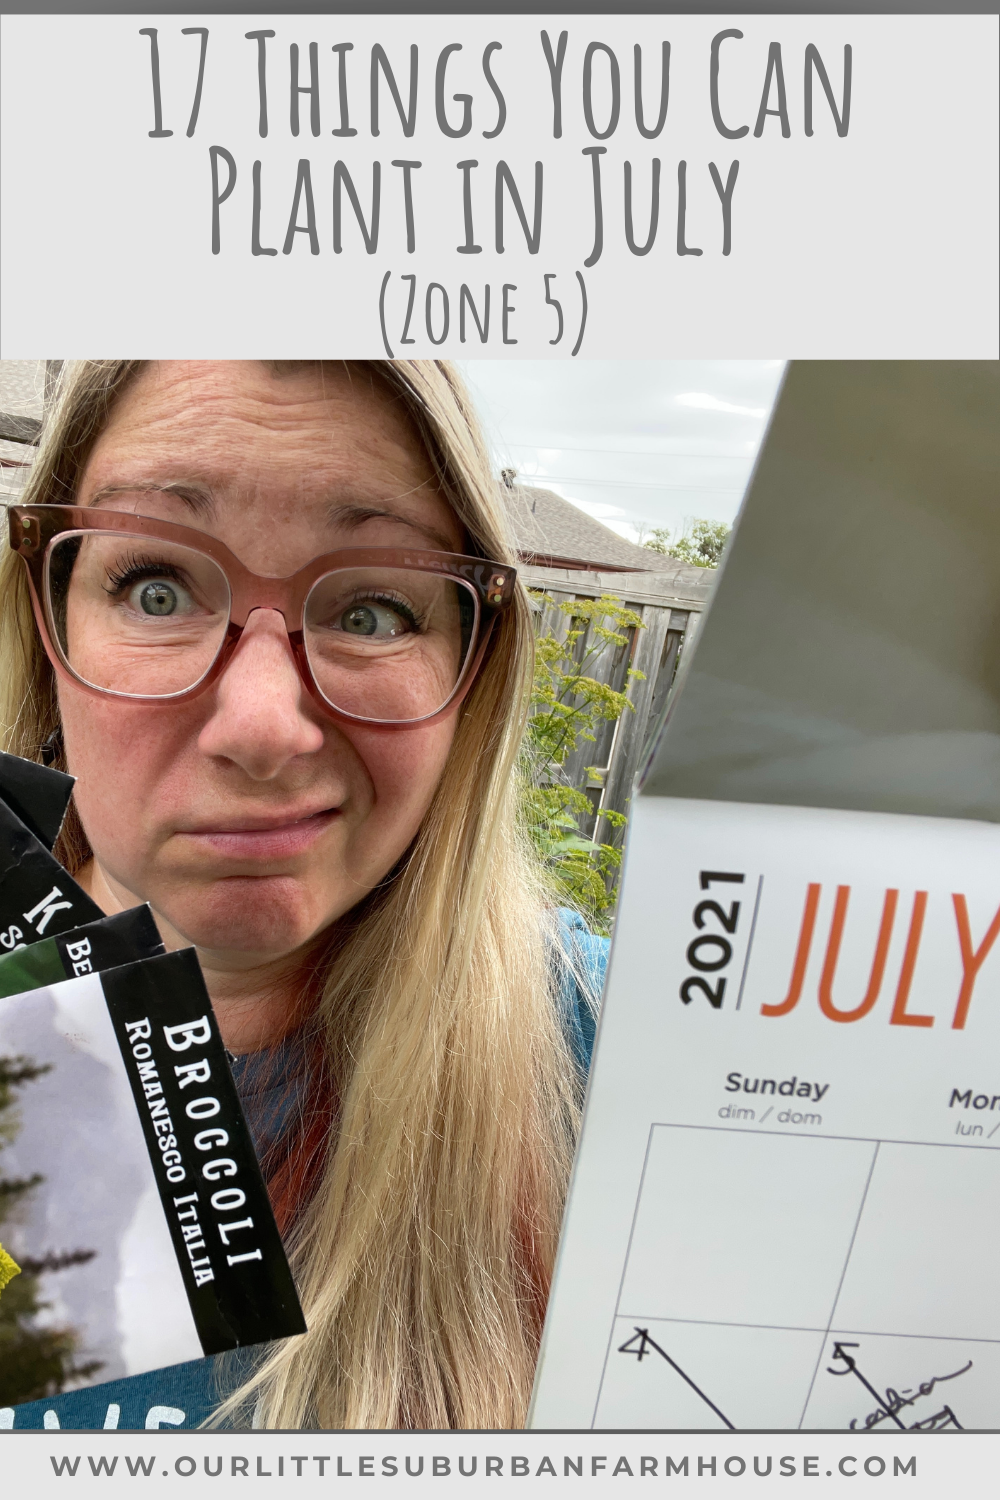 Things to plant in July